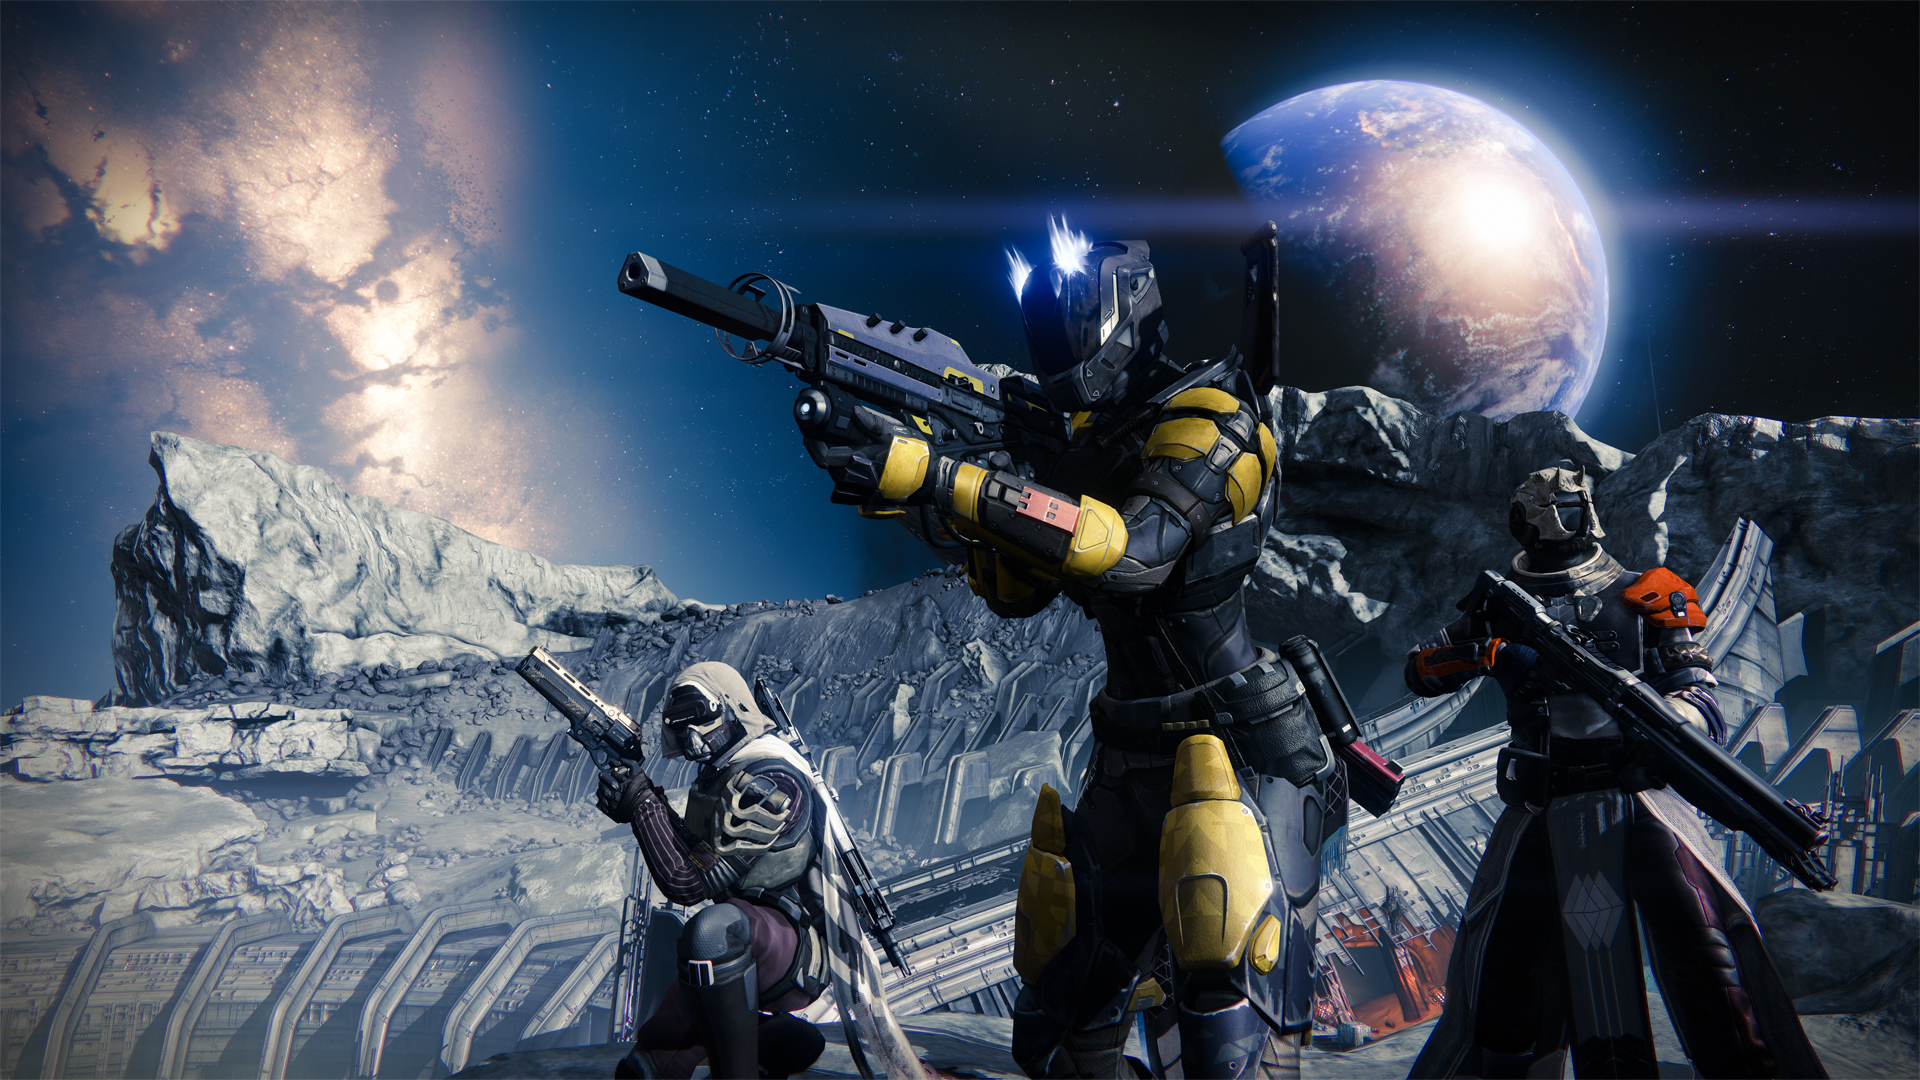 Destiny 'The Moon' Gameplay Trailer, Beta Announced For Early 2014